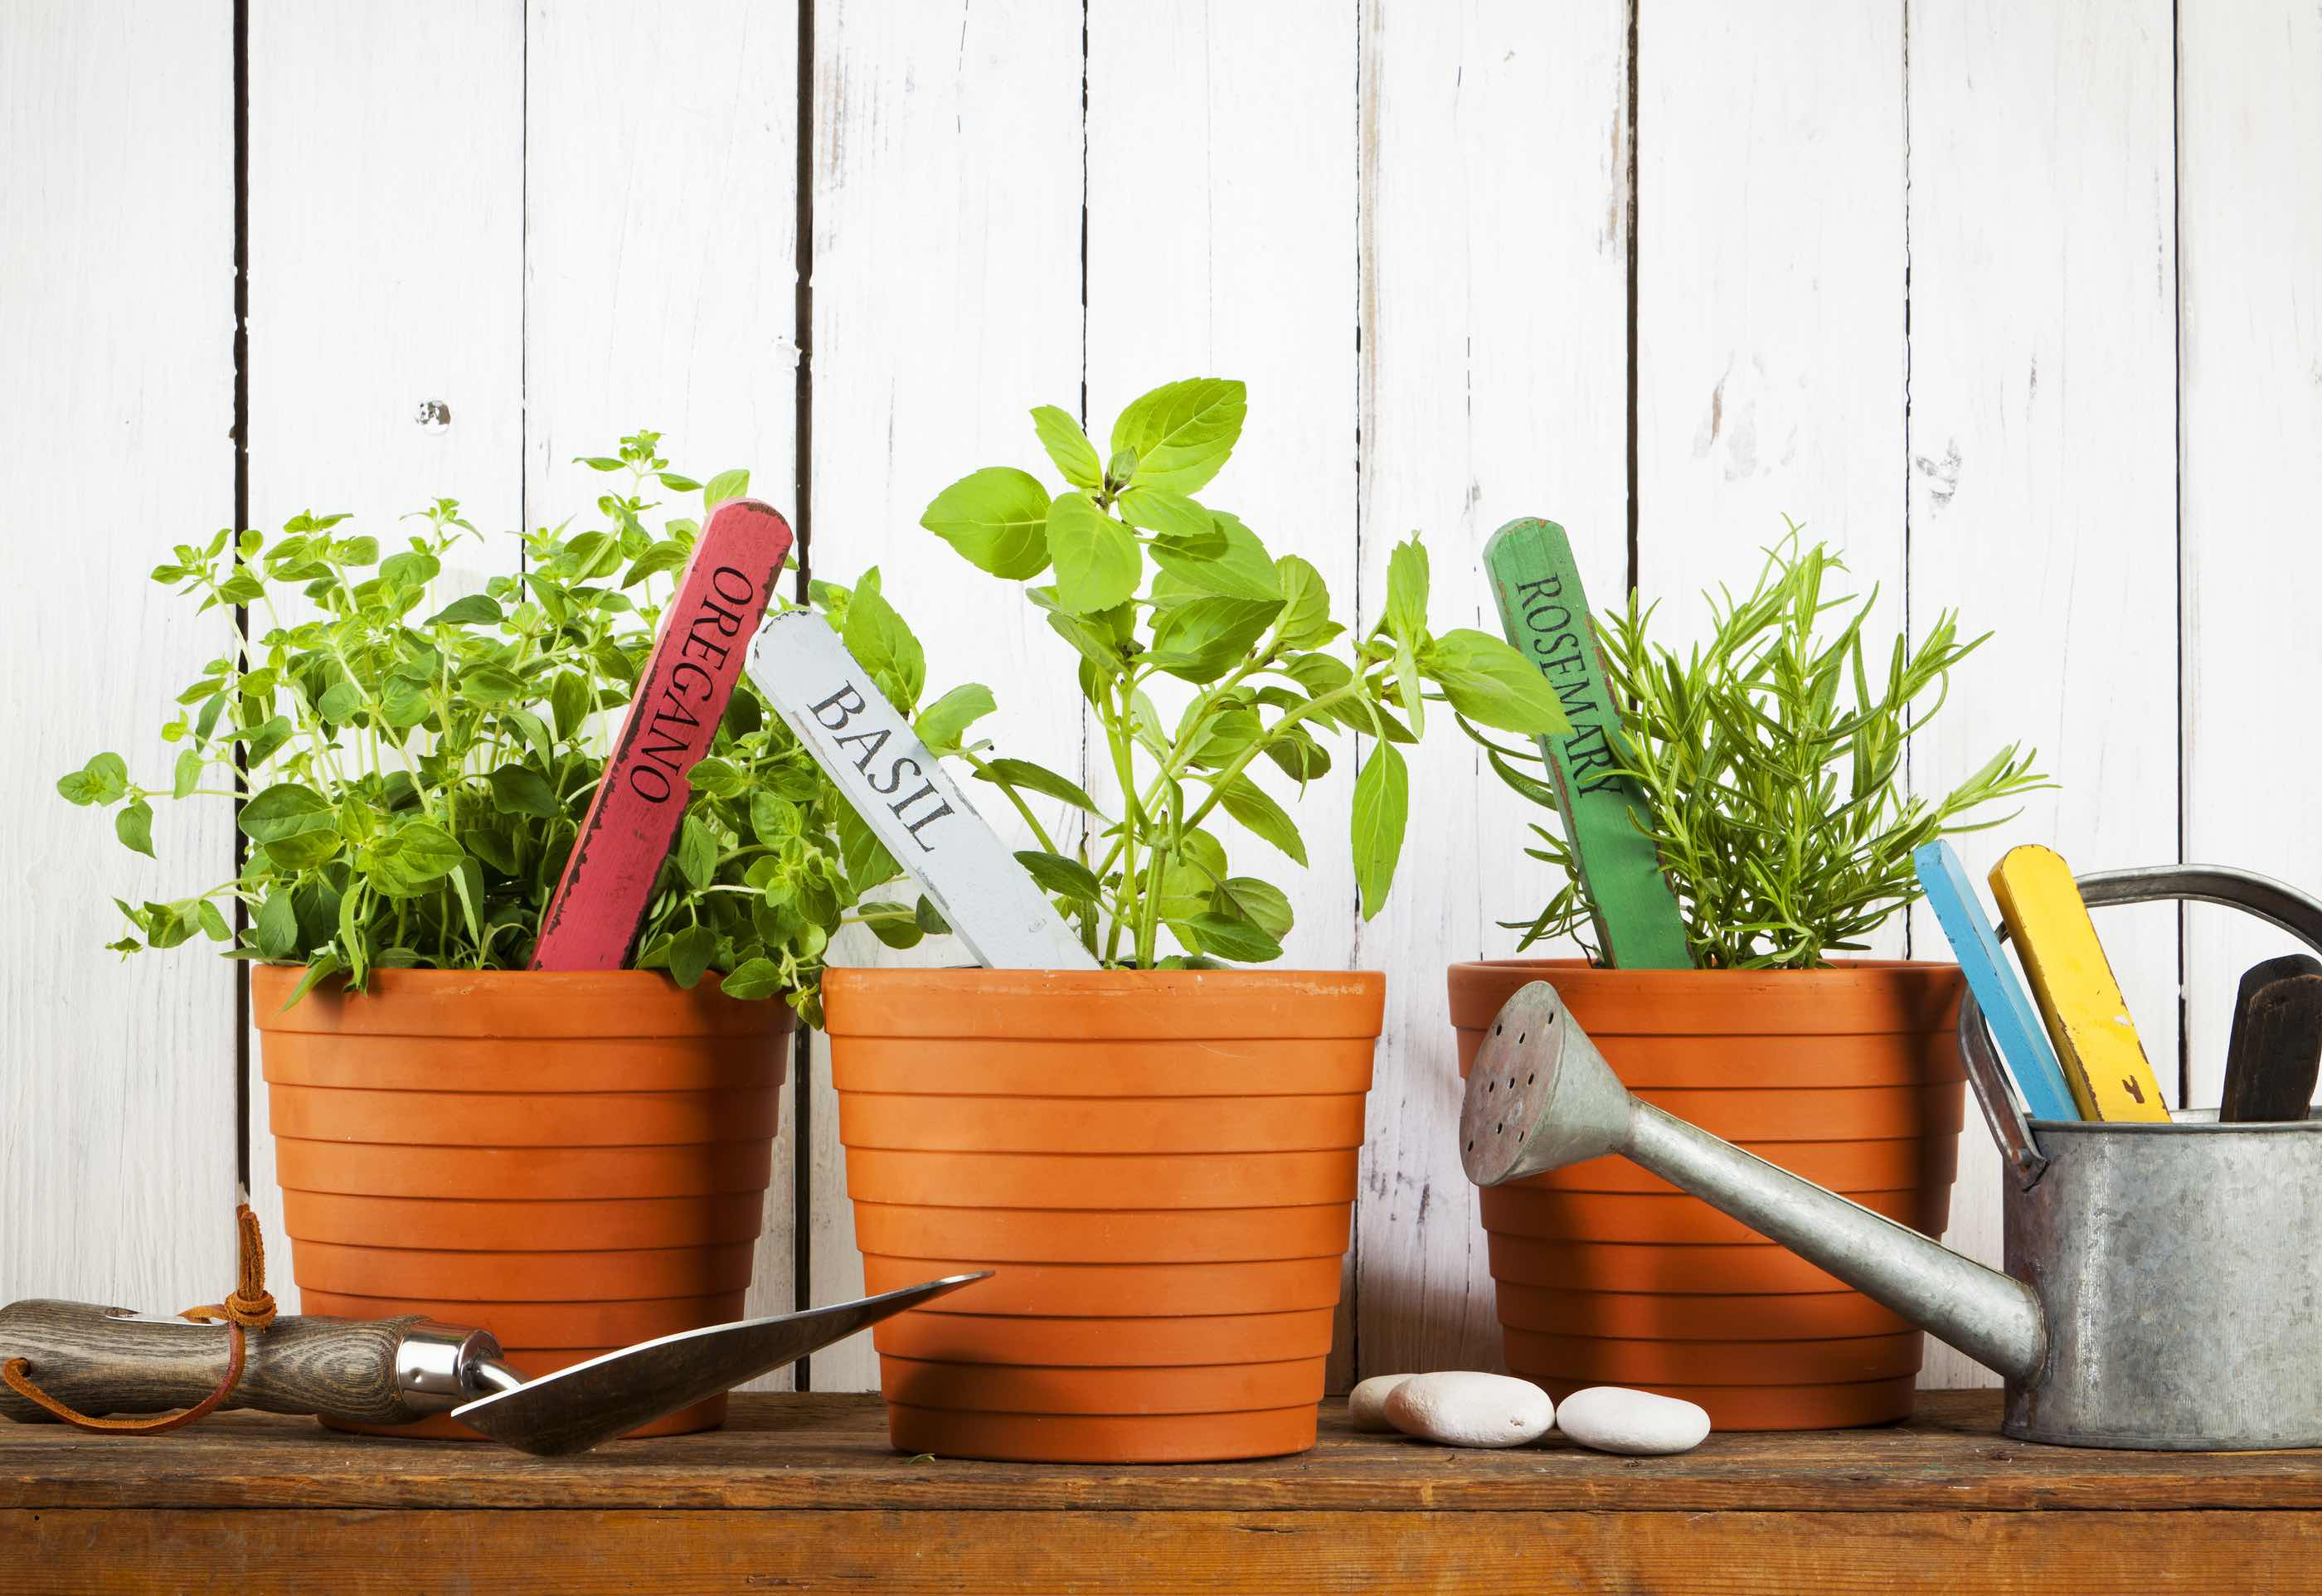 Oregano, Basil and Rosemary plants with name tags in flower pots, shovel and watering can on wooden